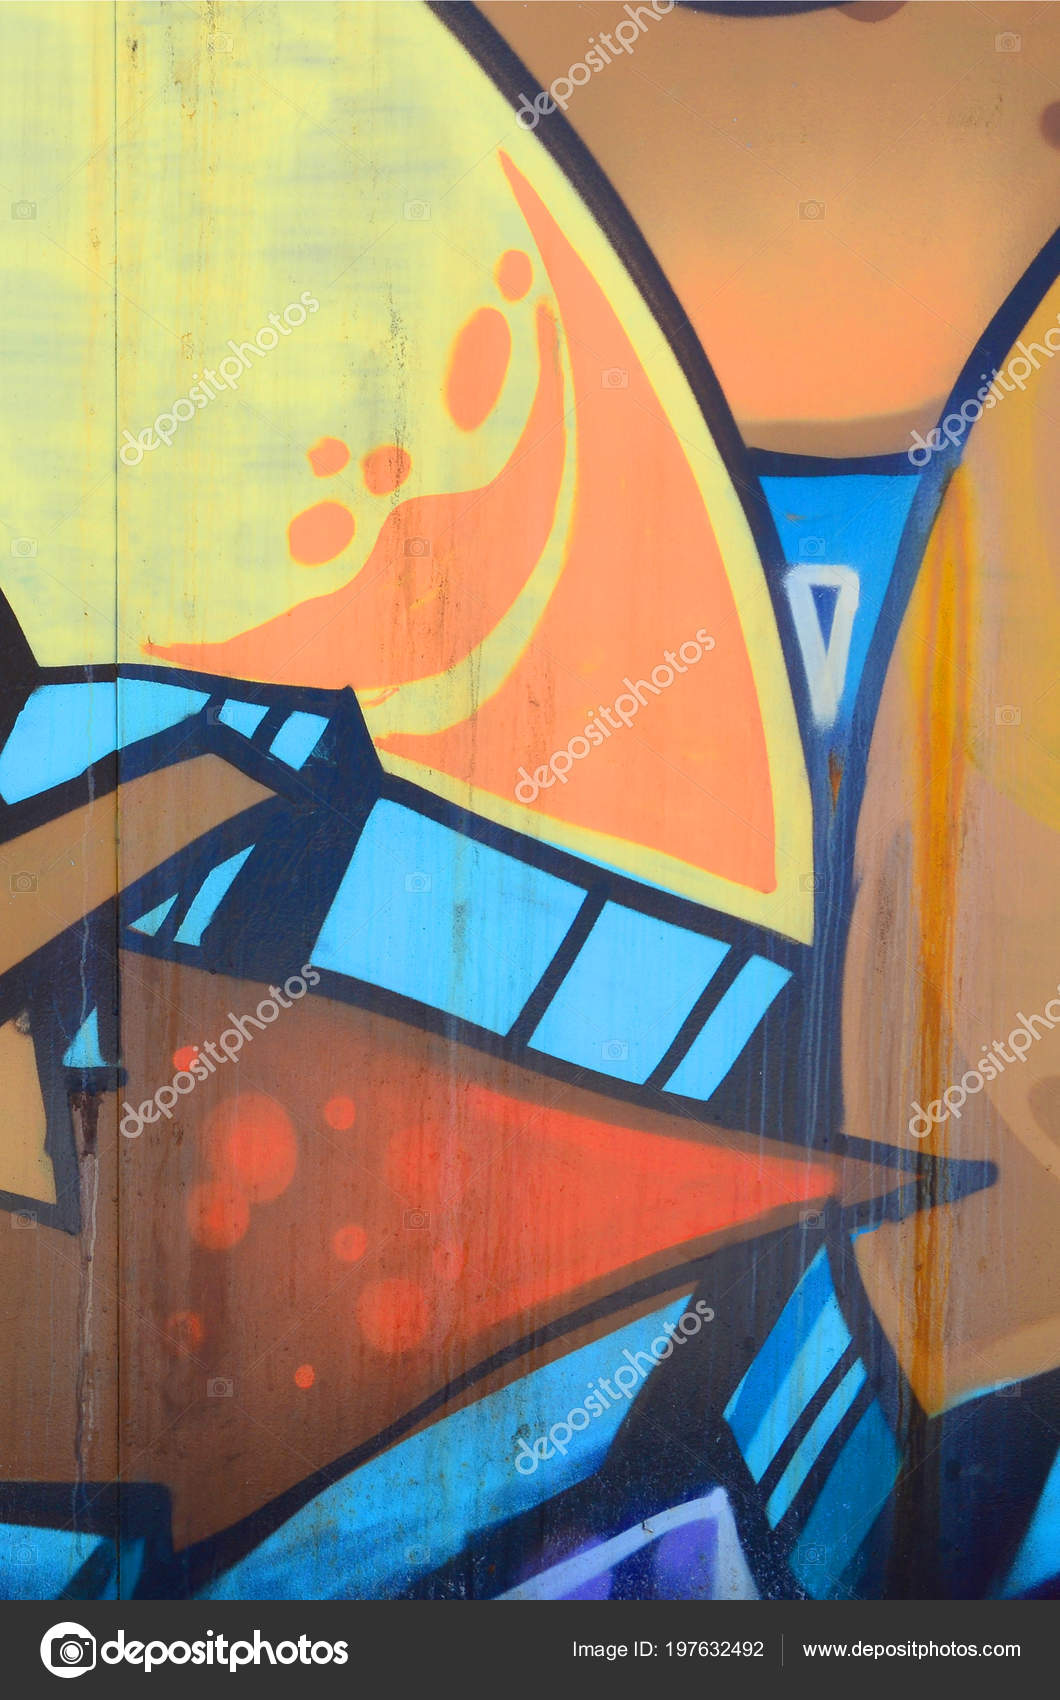 Street art abstract background image fragment colored graffiti painting beige stock photo